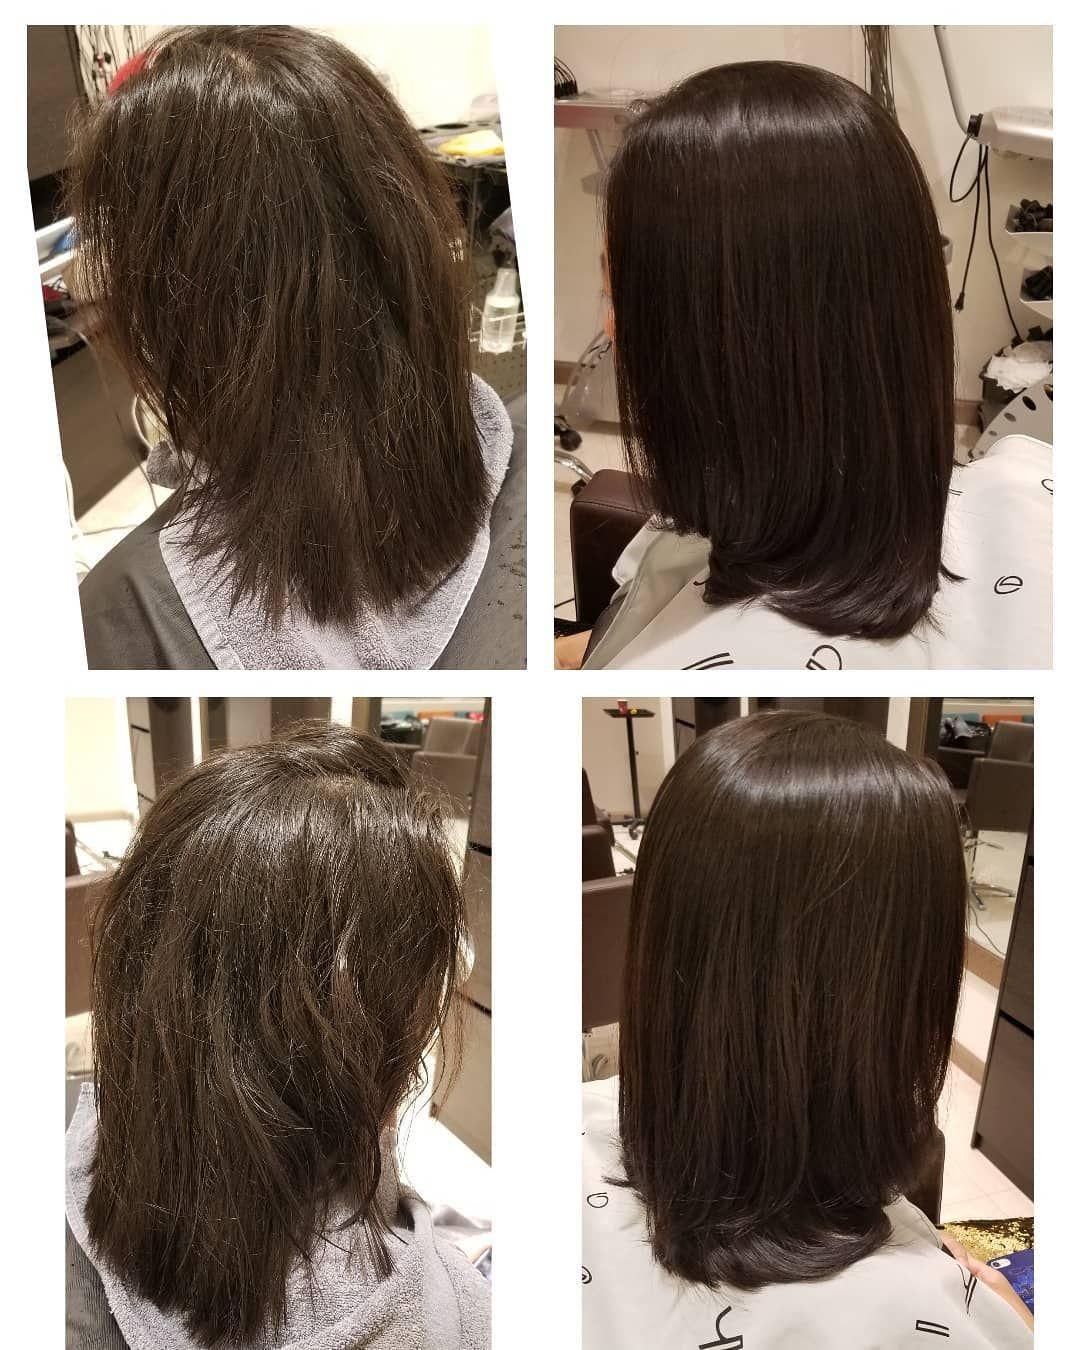 New The 10 Best Hairstyles With Pictures H마트 Hair Hairsalon Austin Austinhairsalons Japanesmagicstraightperm Hair Styles Long Hair Styles Beauty